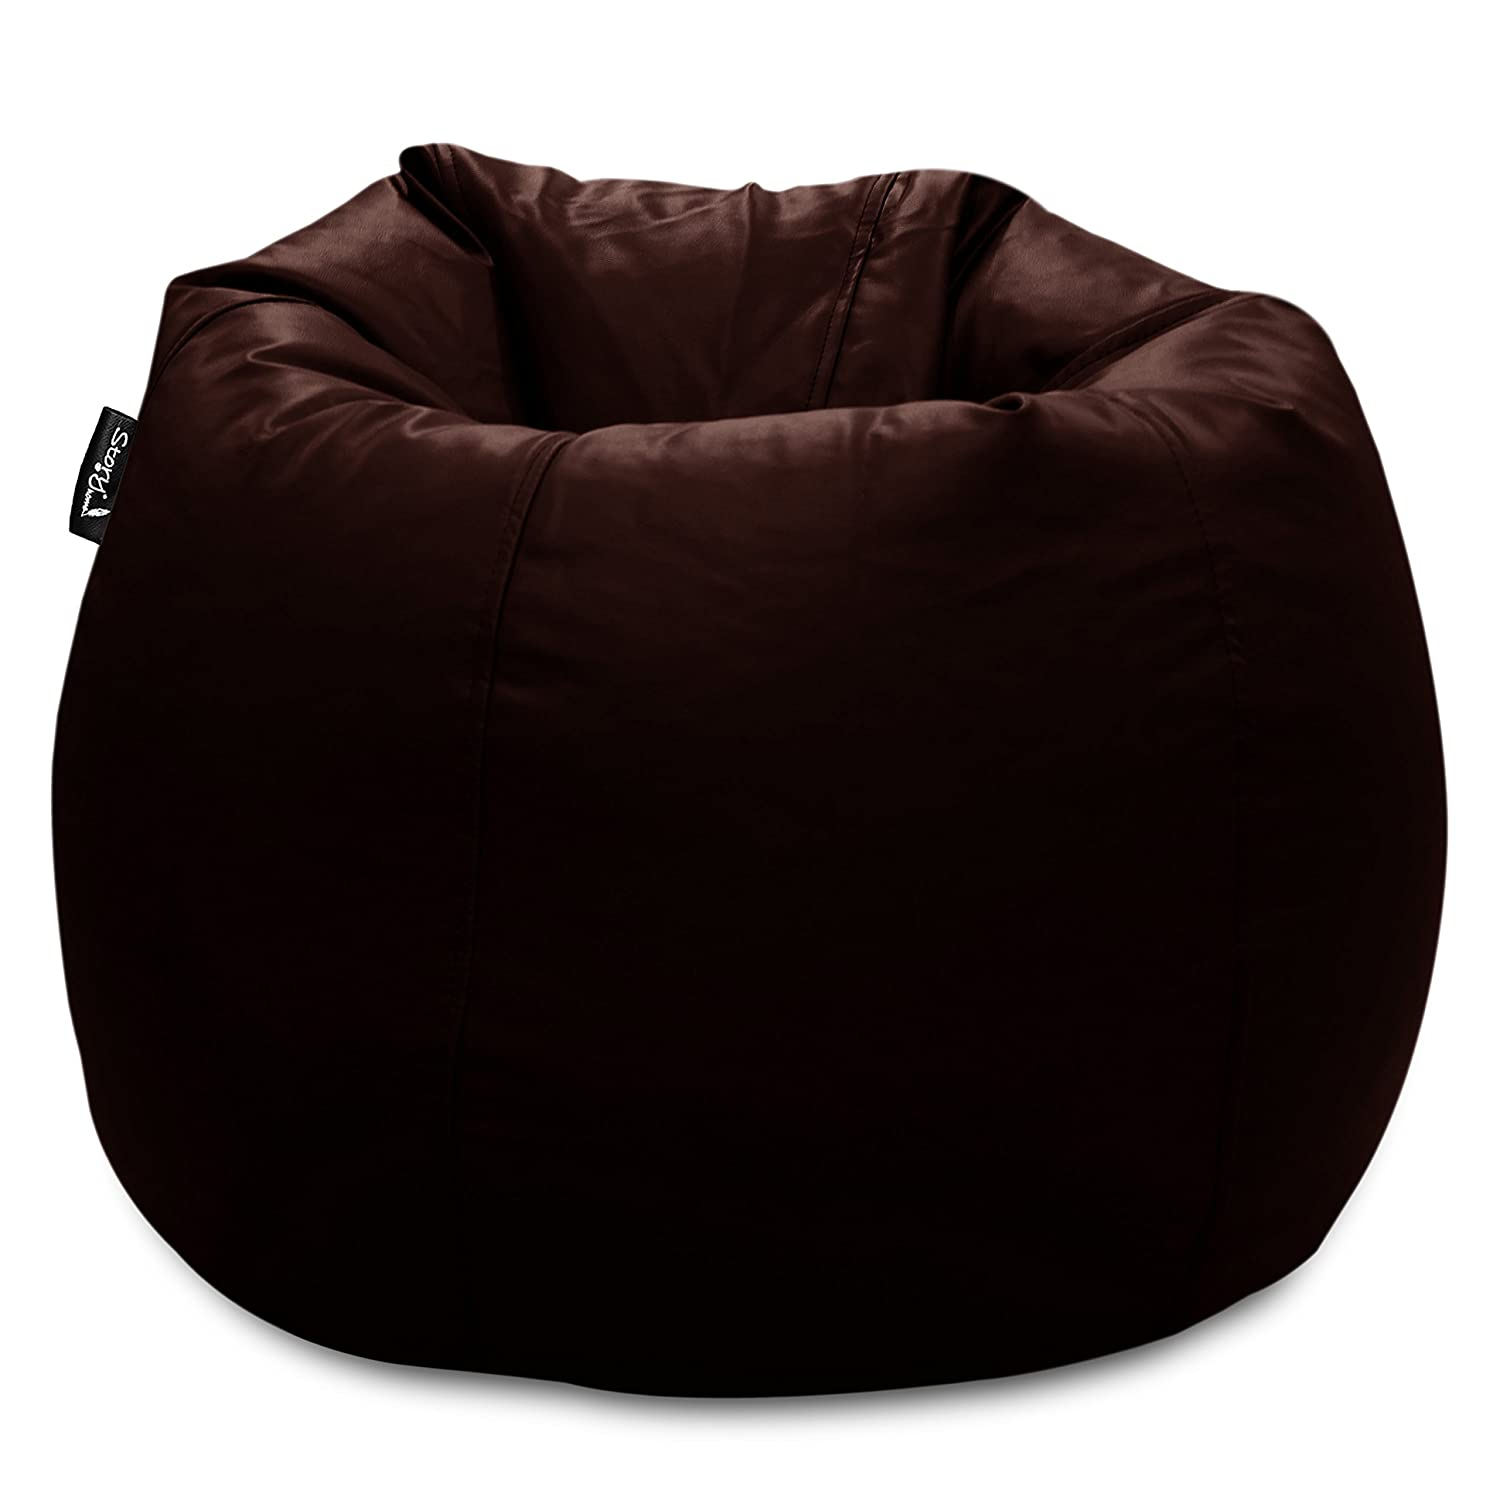 Story@Home XL Bean Chair without Beans (Chocolate Brown)